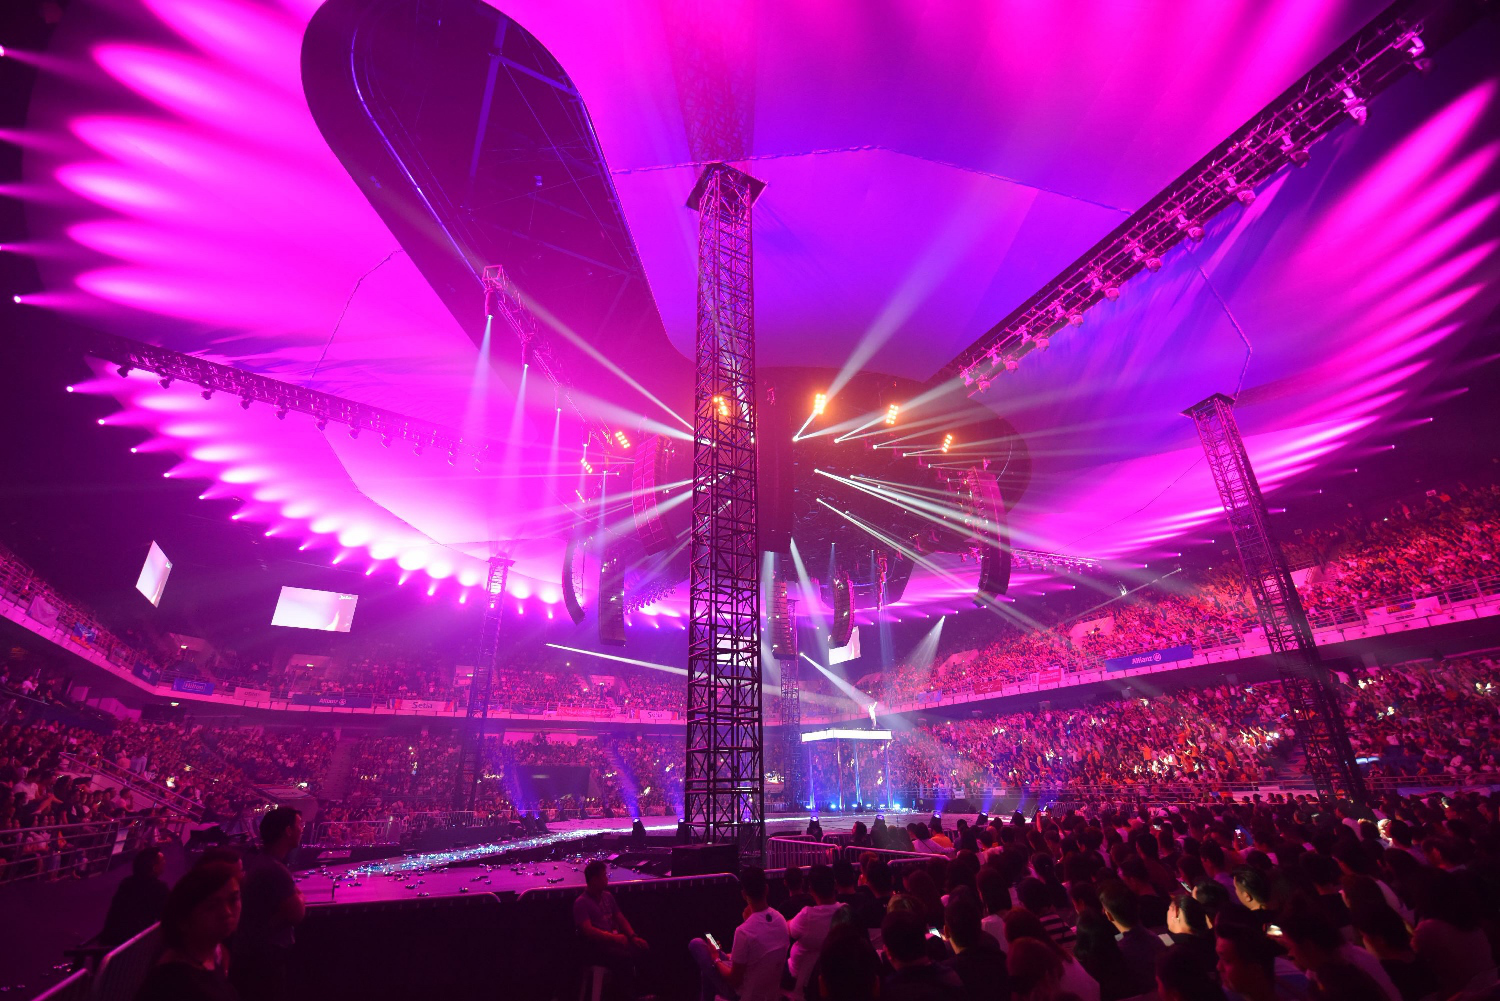 Andy Lau Concert in Malaysia